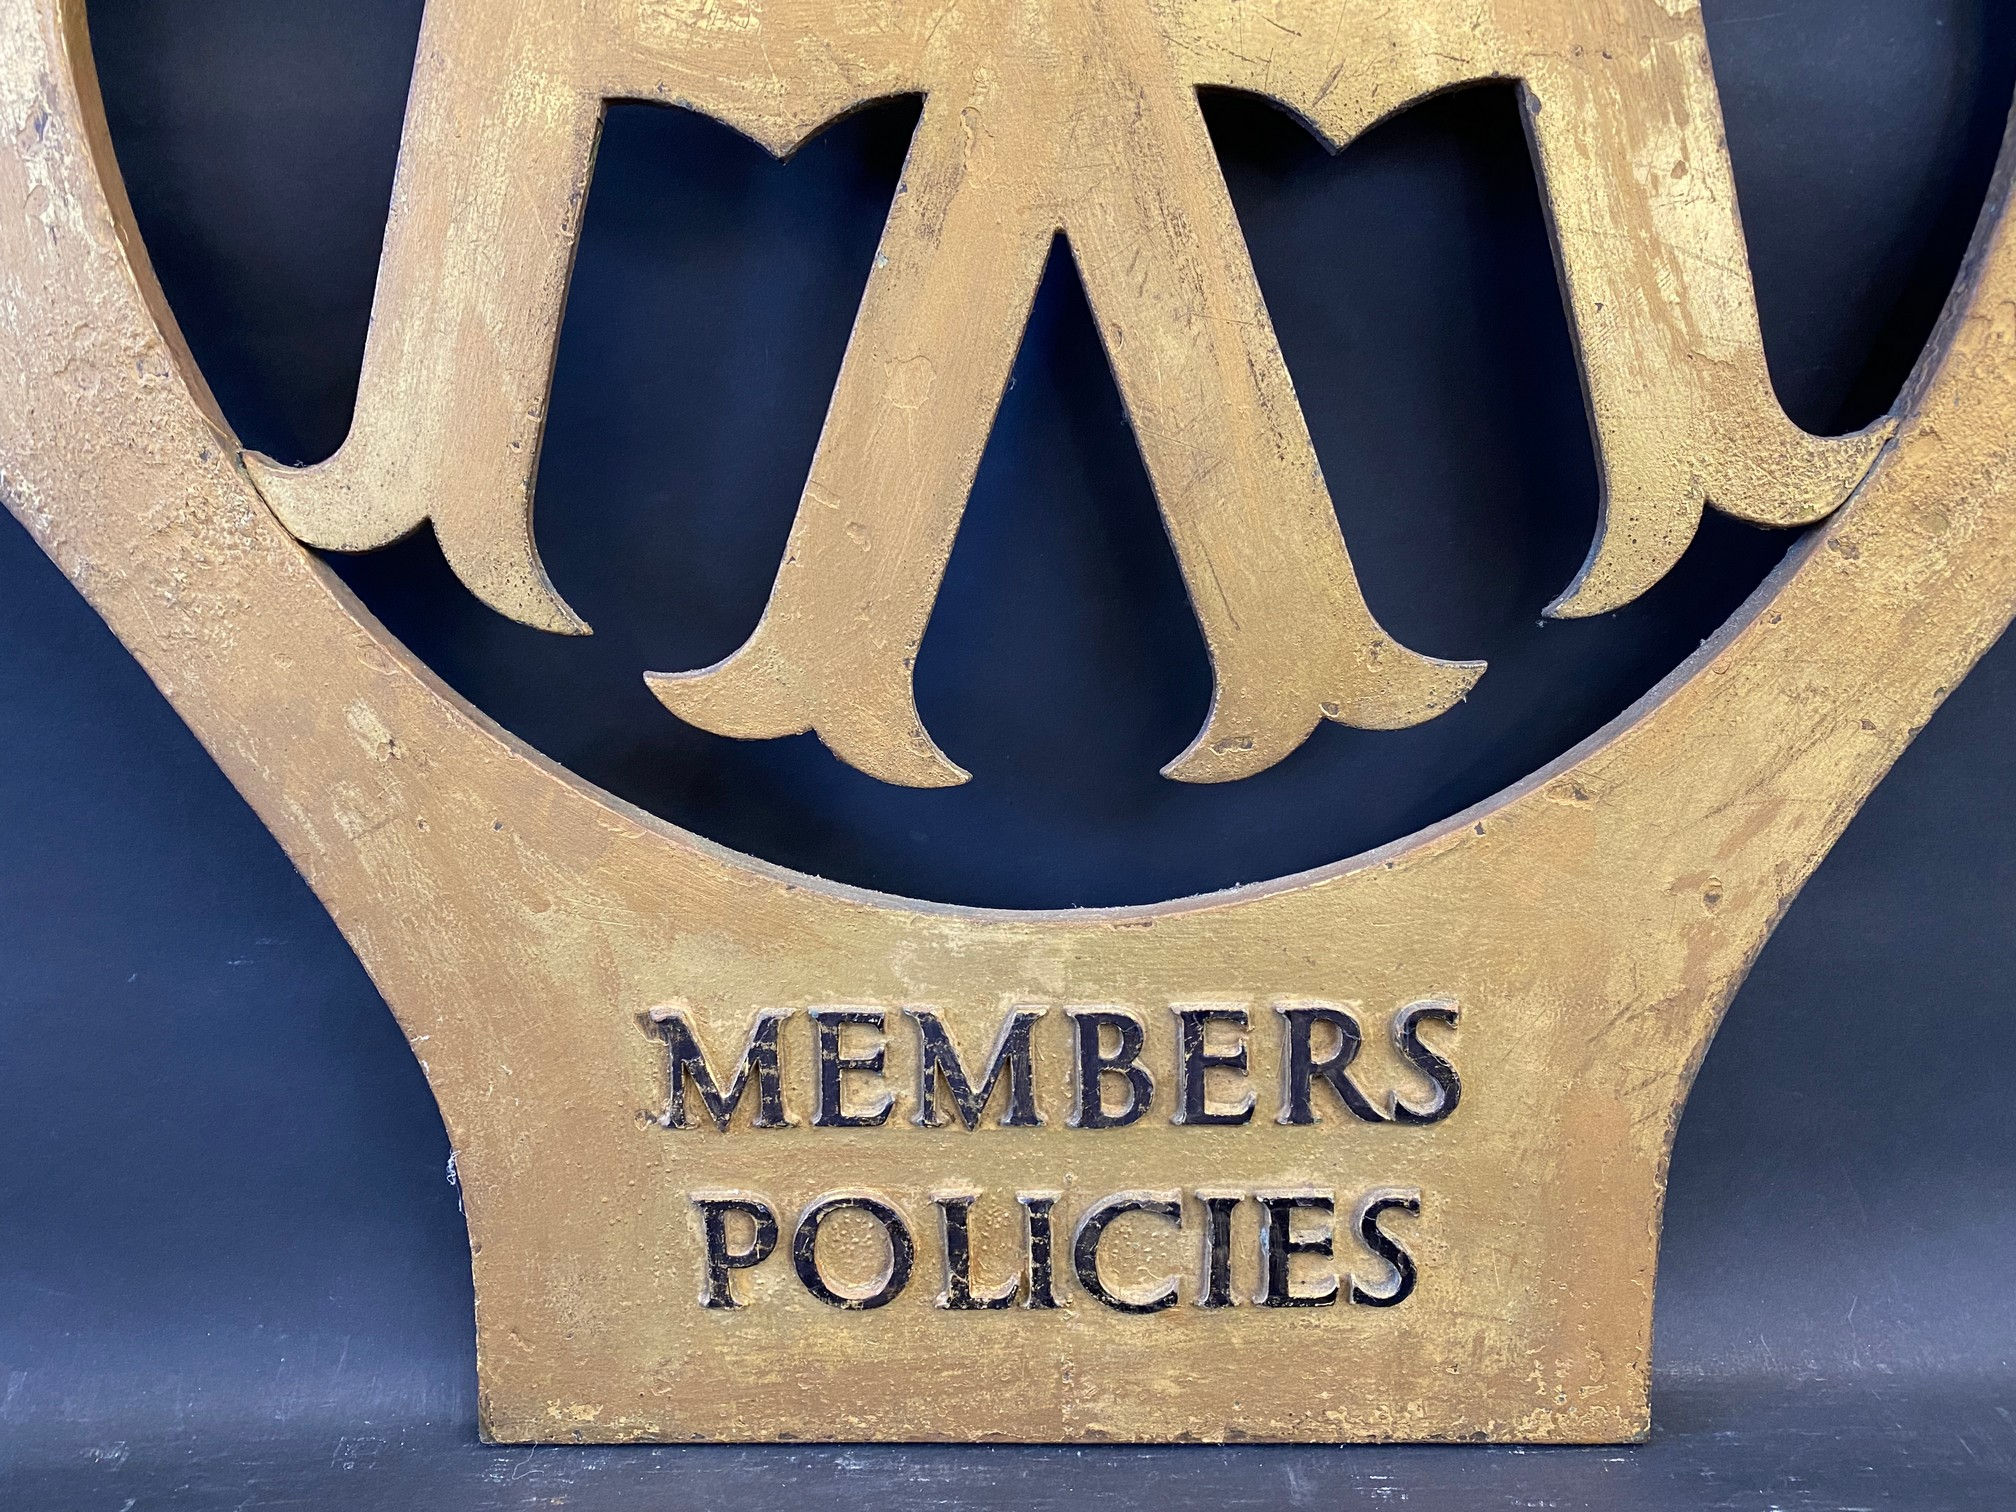 """A rare large scale AA Members Policies bronze die-cut emblem sign, 24 x 27"""". - Image 3 of 4"""